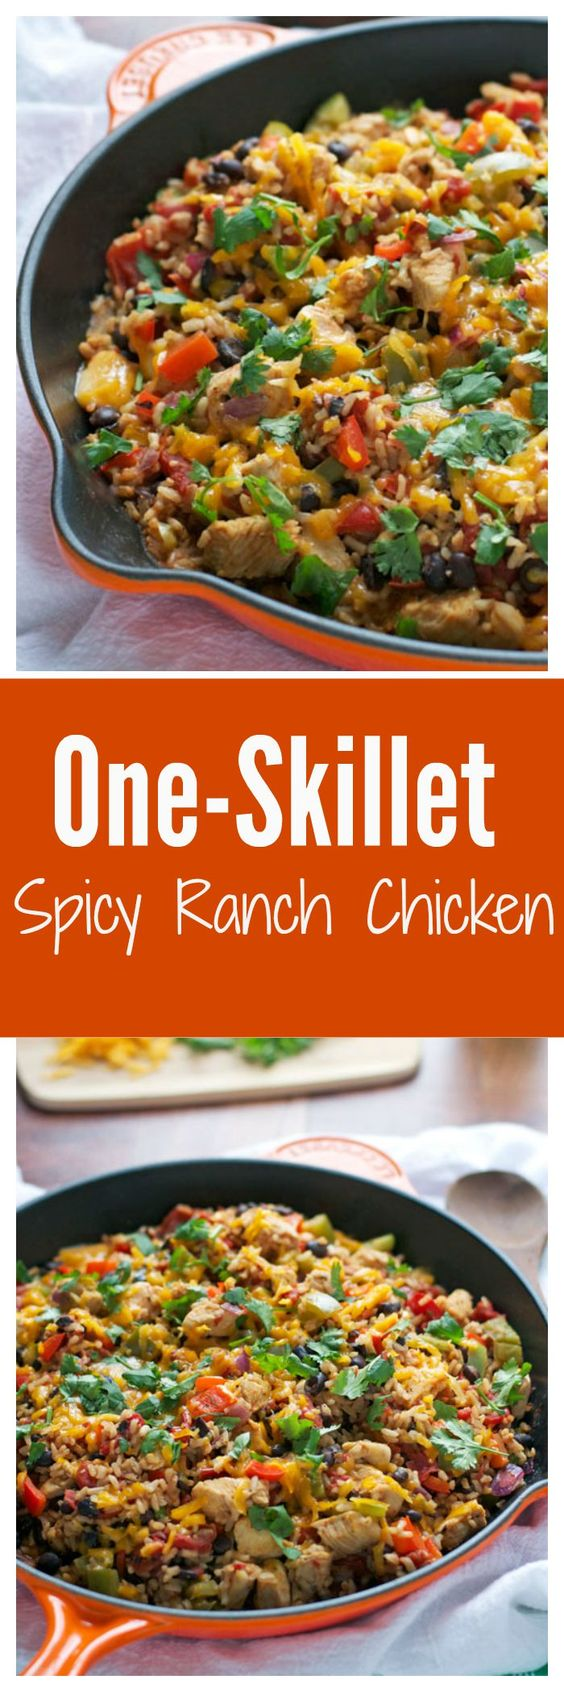 Ranch chicken, Skillets and Spicy on Pinterest